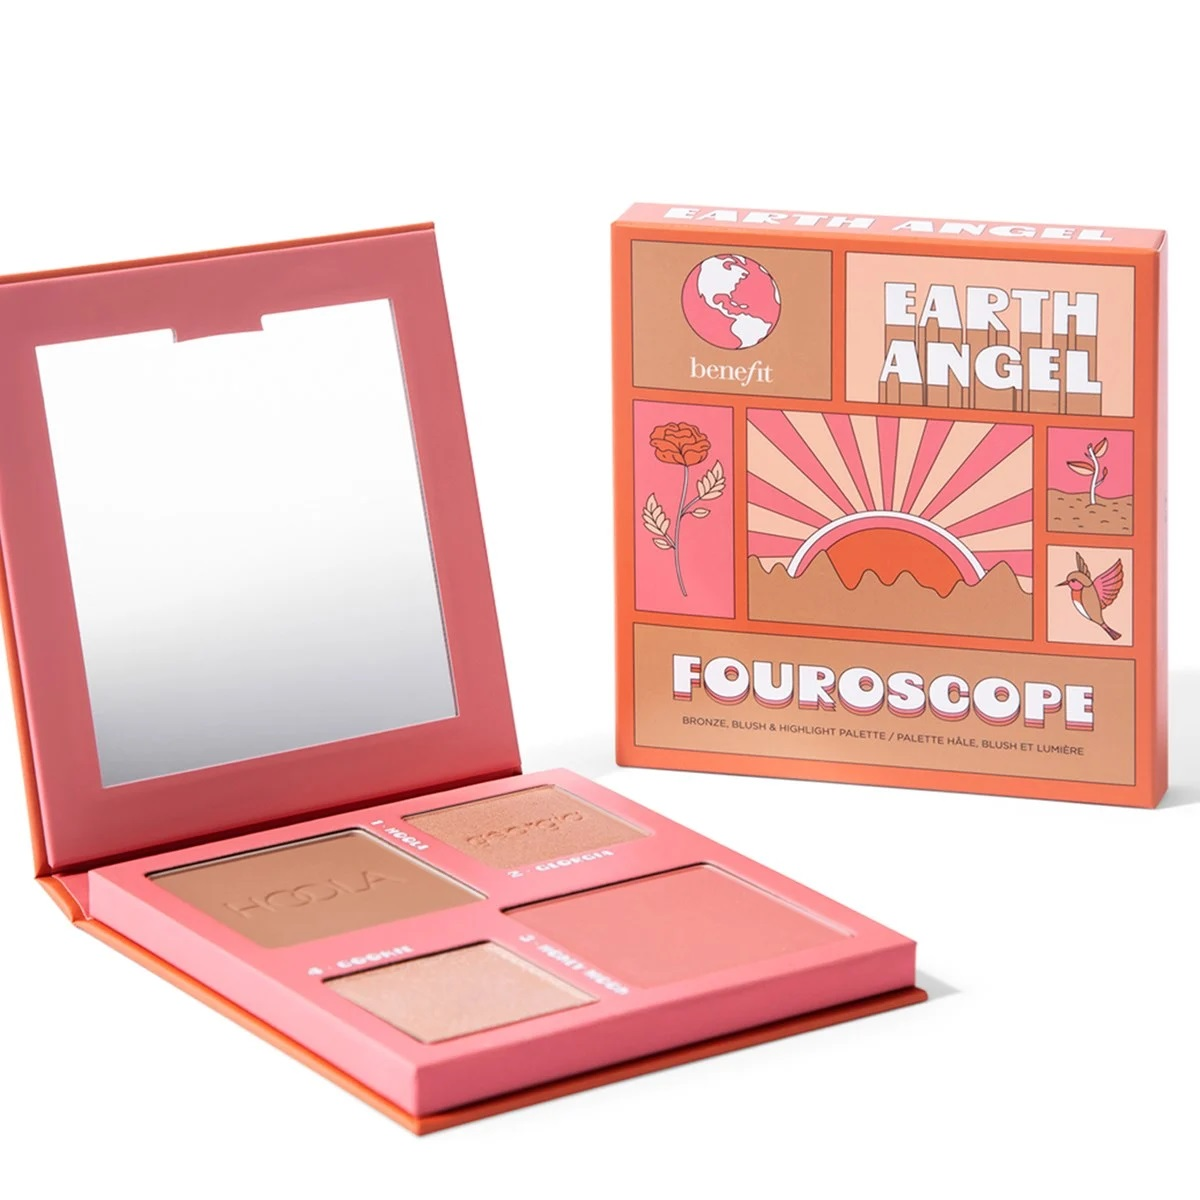 Benefit Fouroscope Cheek Palette Collection